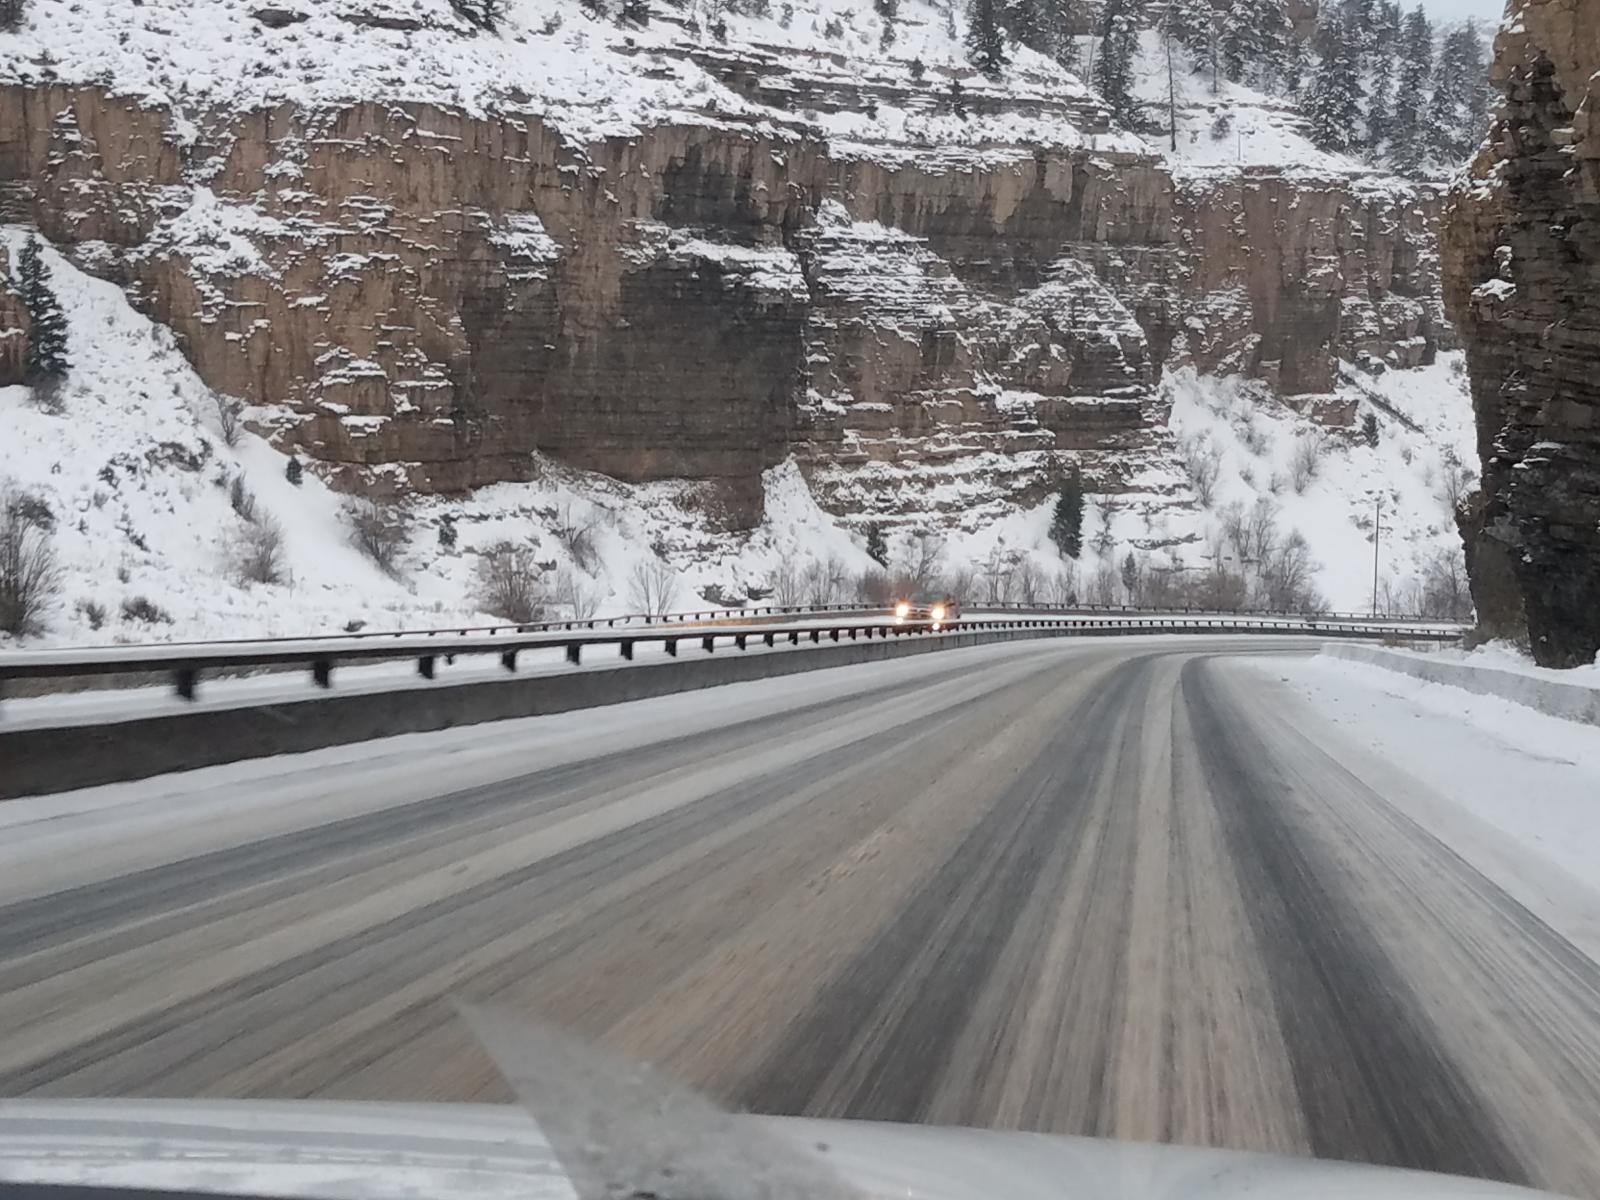 Icy roads in Glenwood Canyon